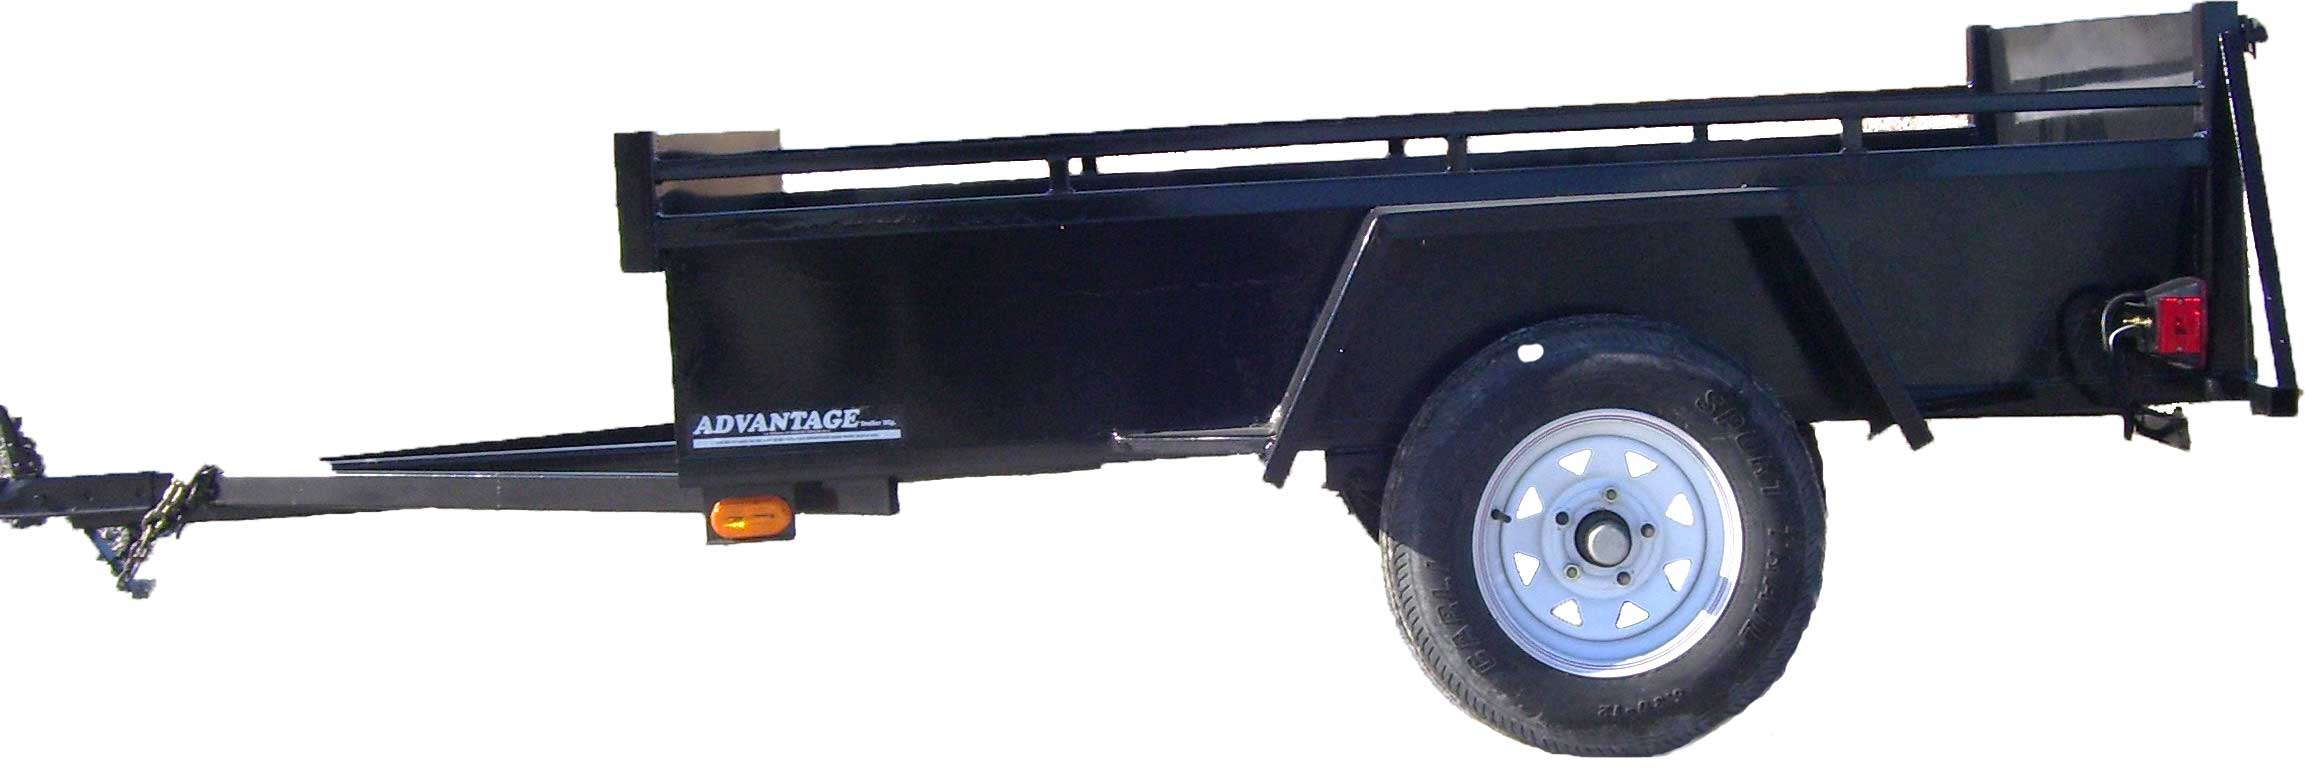 automotive parts certification with Crucial Trailer Accessories on Crucial Trailer Accessories furthermore 1319 750kg Titan Lever Hoist 15m in addition Warranties additionally Vex Mechanical Power Transmission additionally Thermelec.